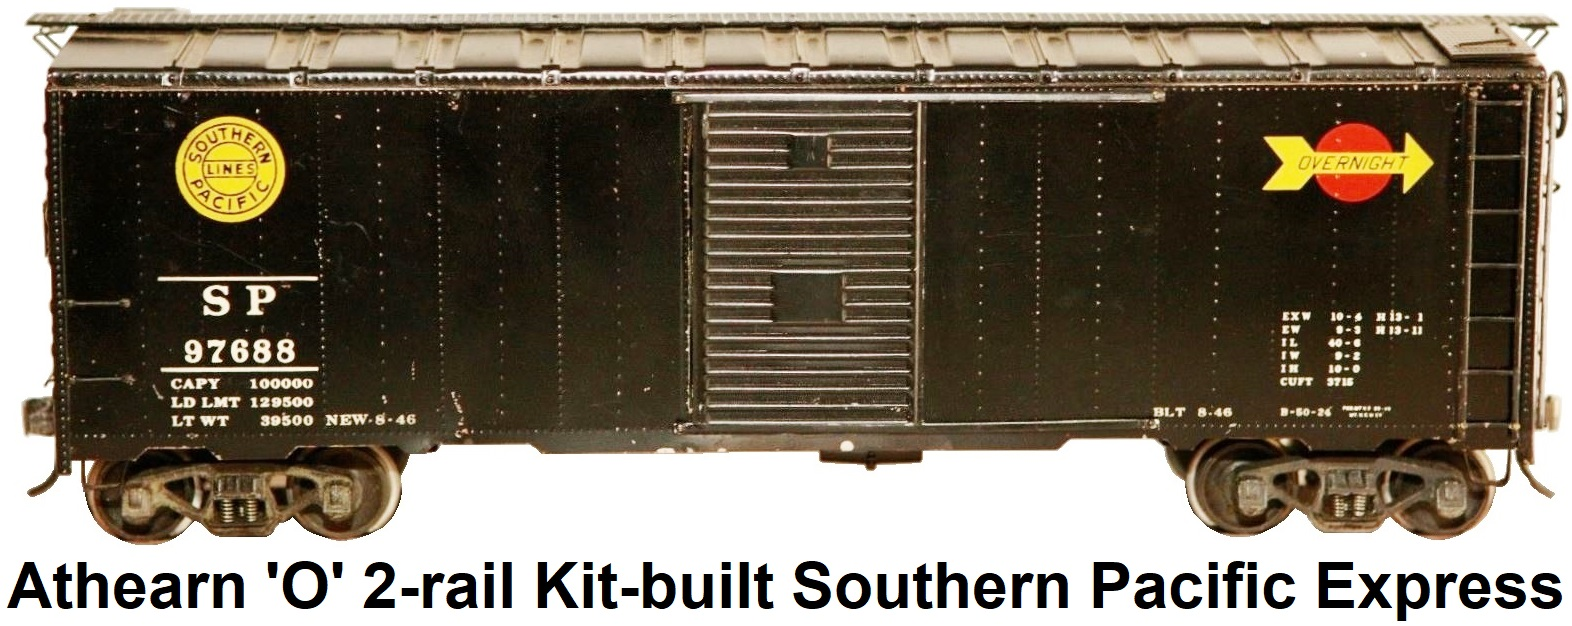 Athearn 'O' scale Kit-built 2-rail Southern Pacific Overnight Express Single door 40' steel box car